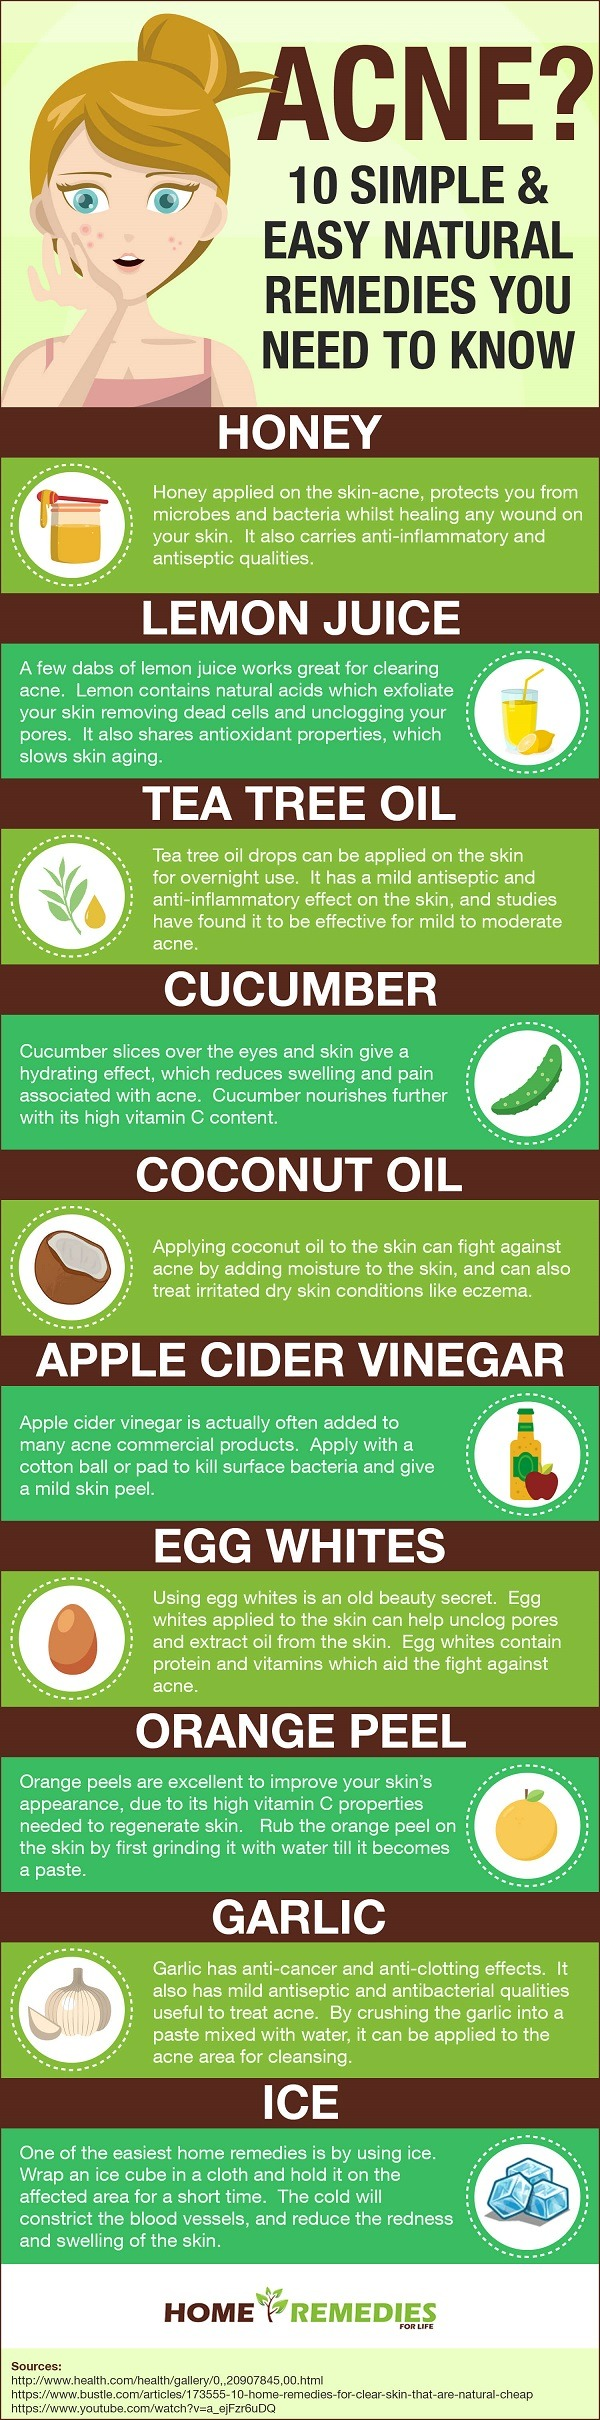 Acne 10 simple easy natural treatment remedies remedy